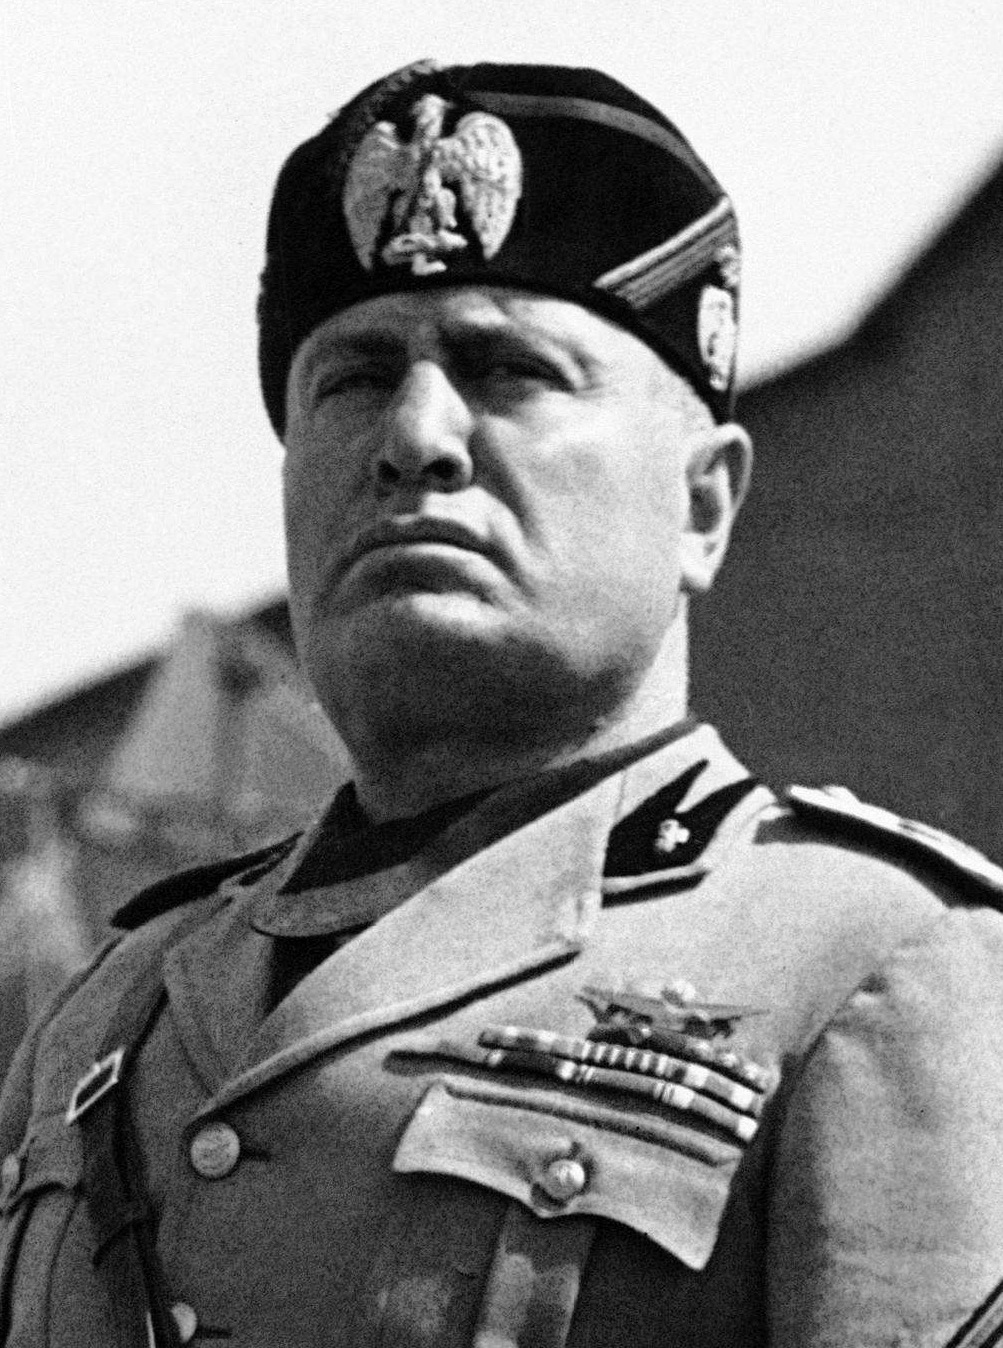 an analysis of the rise and fall to power of benito mussolini and the impact he had on world war two Start studying world war 2/cold war learn rise of the nazis to power one reason the fascist governments of benito mussolini and adolf hitler came to power.